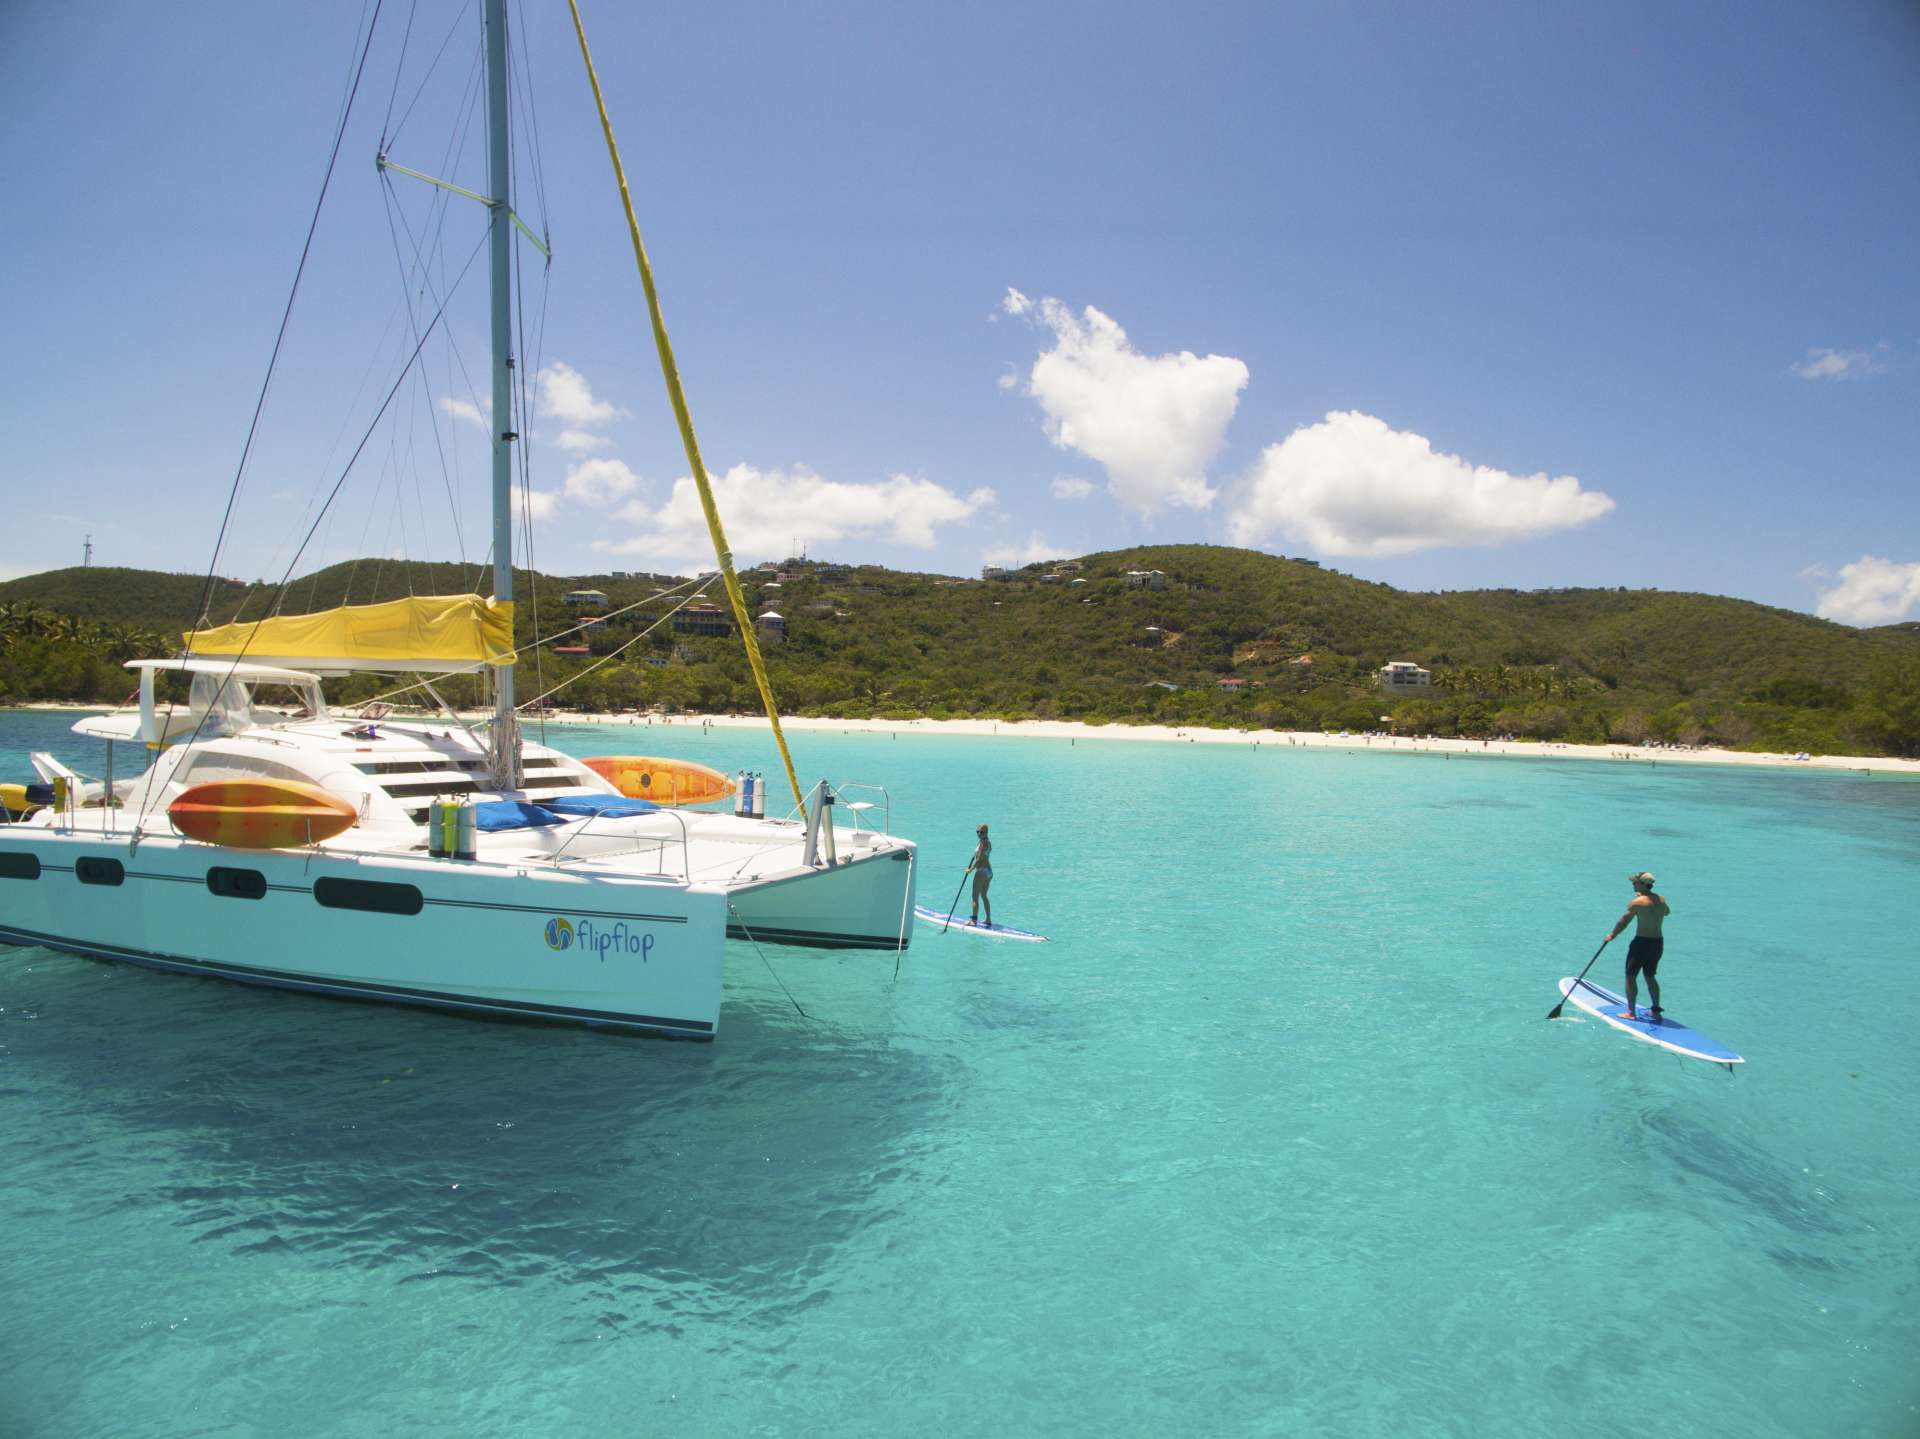 Charter with FLIP FLOP on compassyachtcharters.com